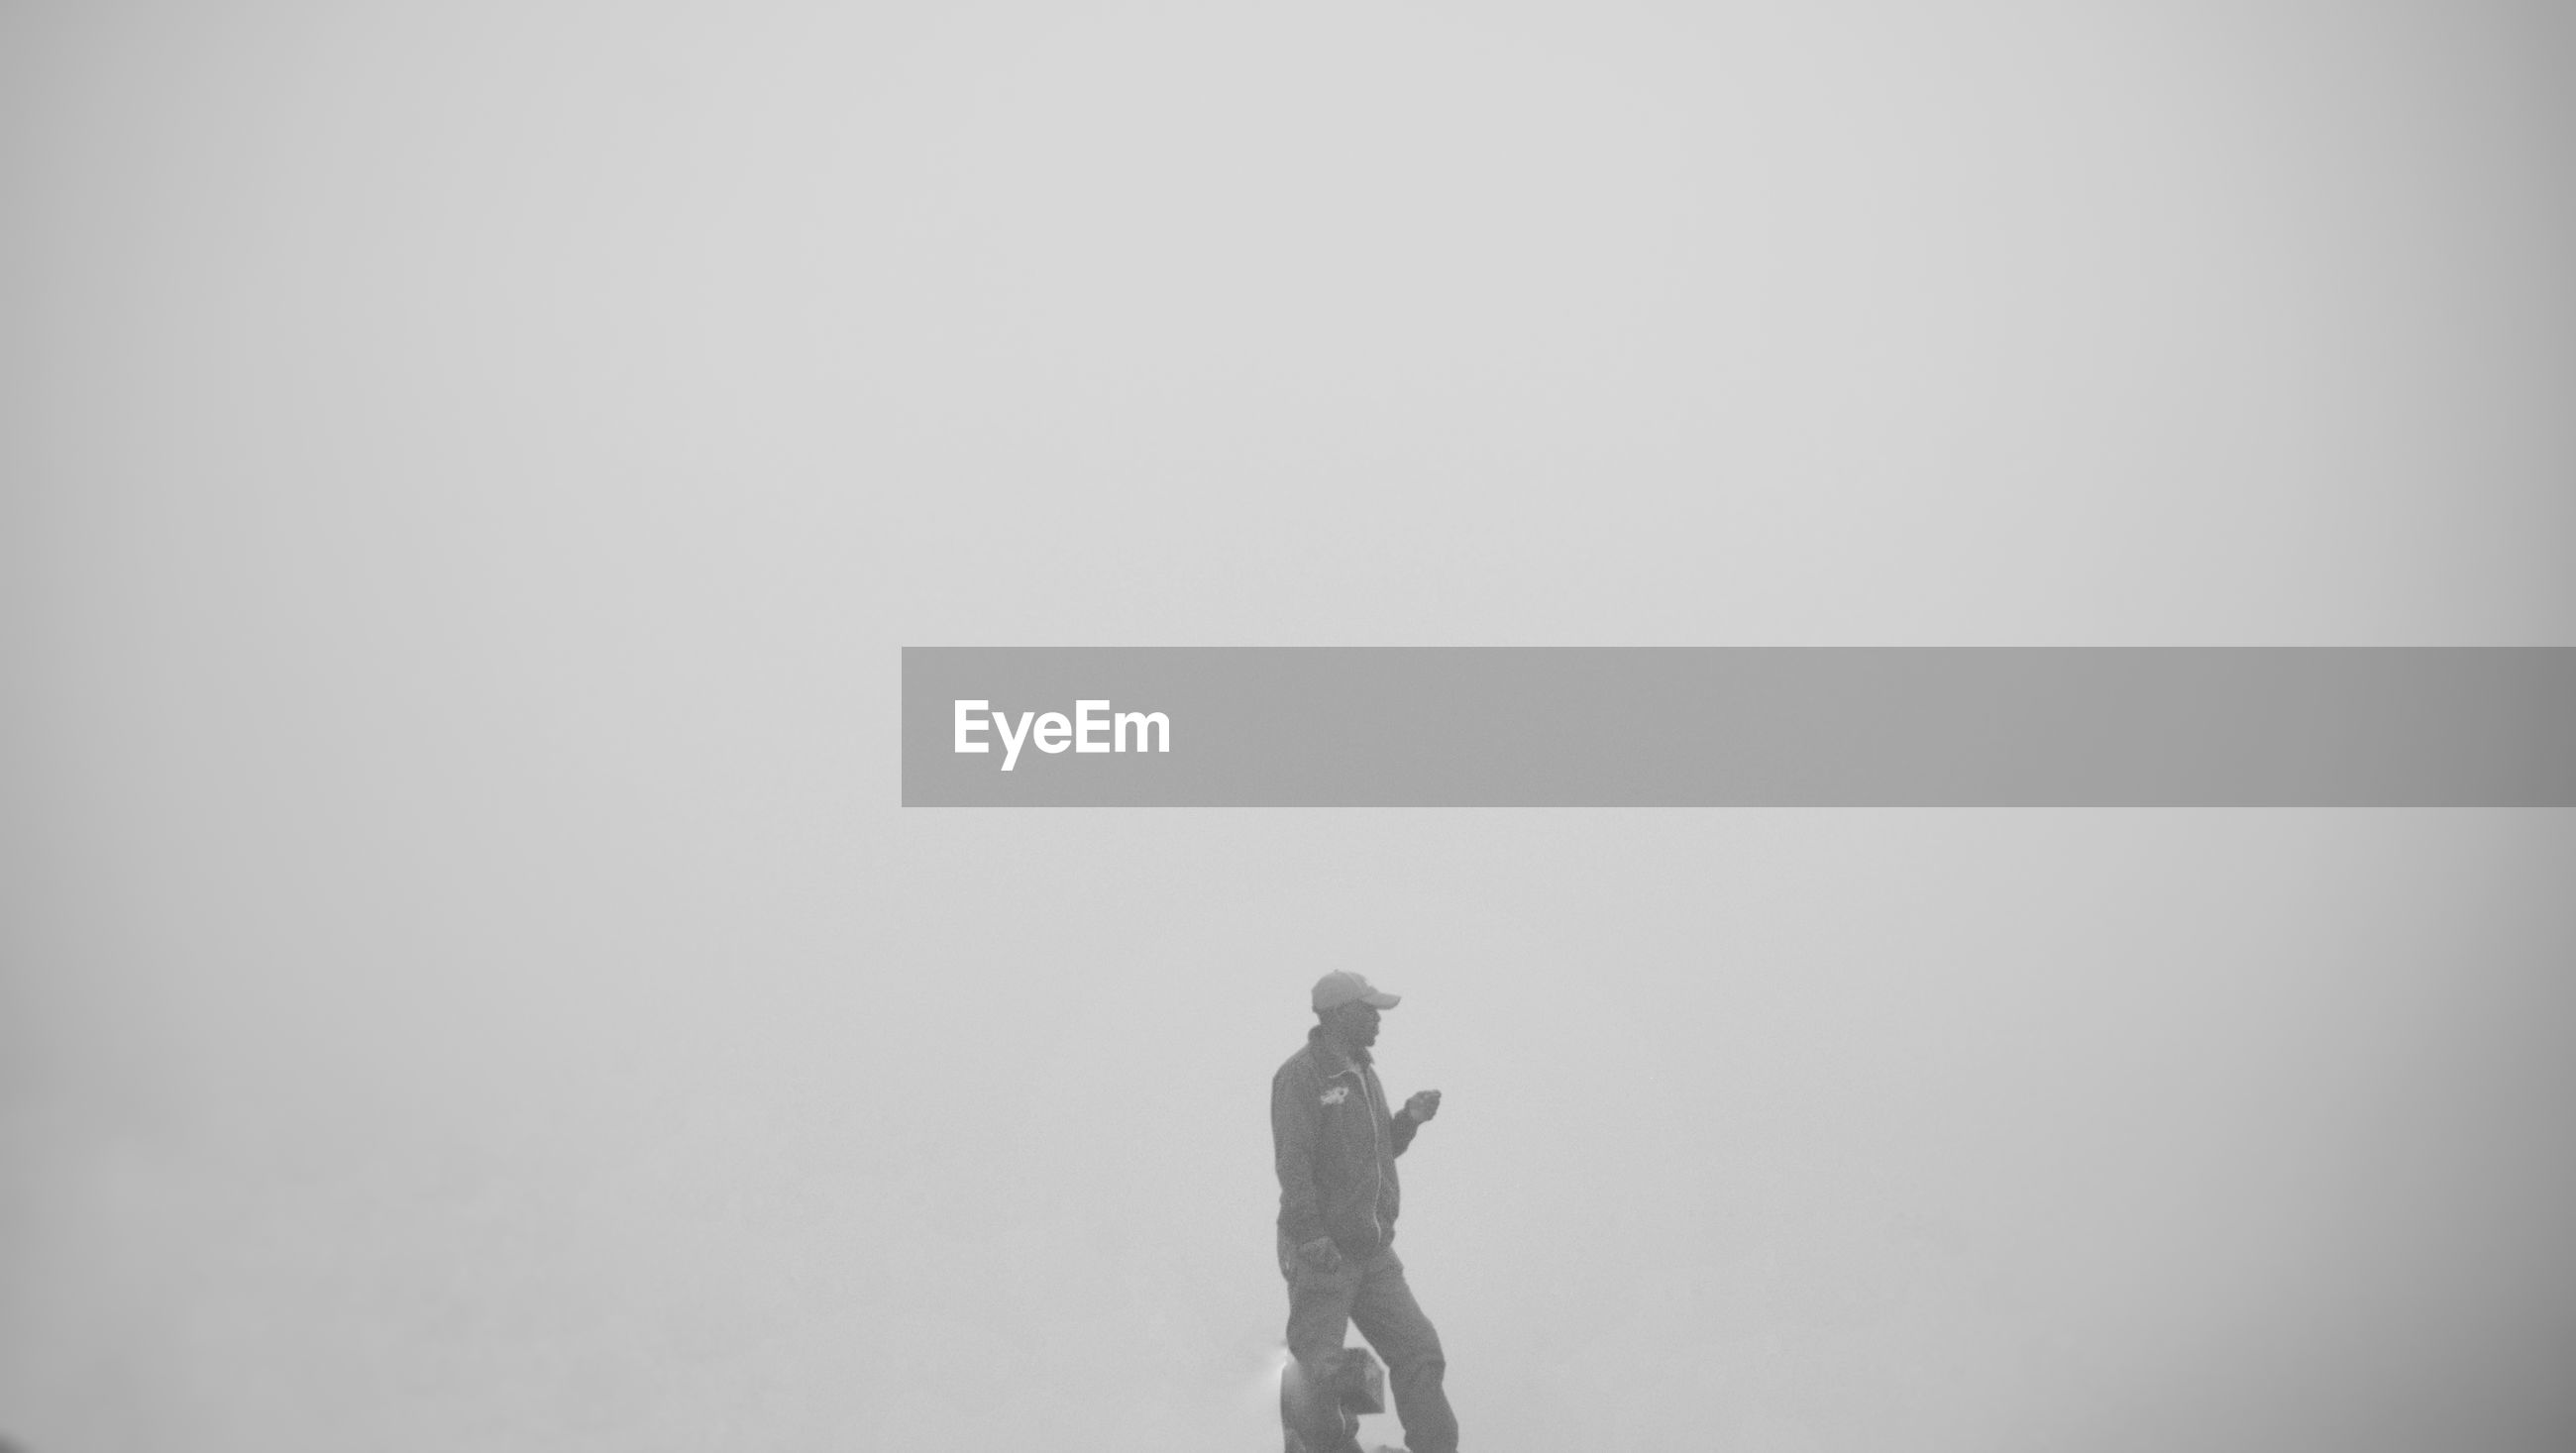 SIDE VIEW OF A WOMAN ON FOGGY DAY